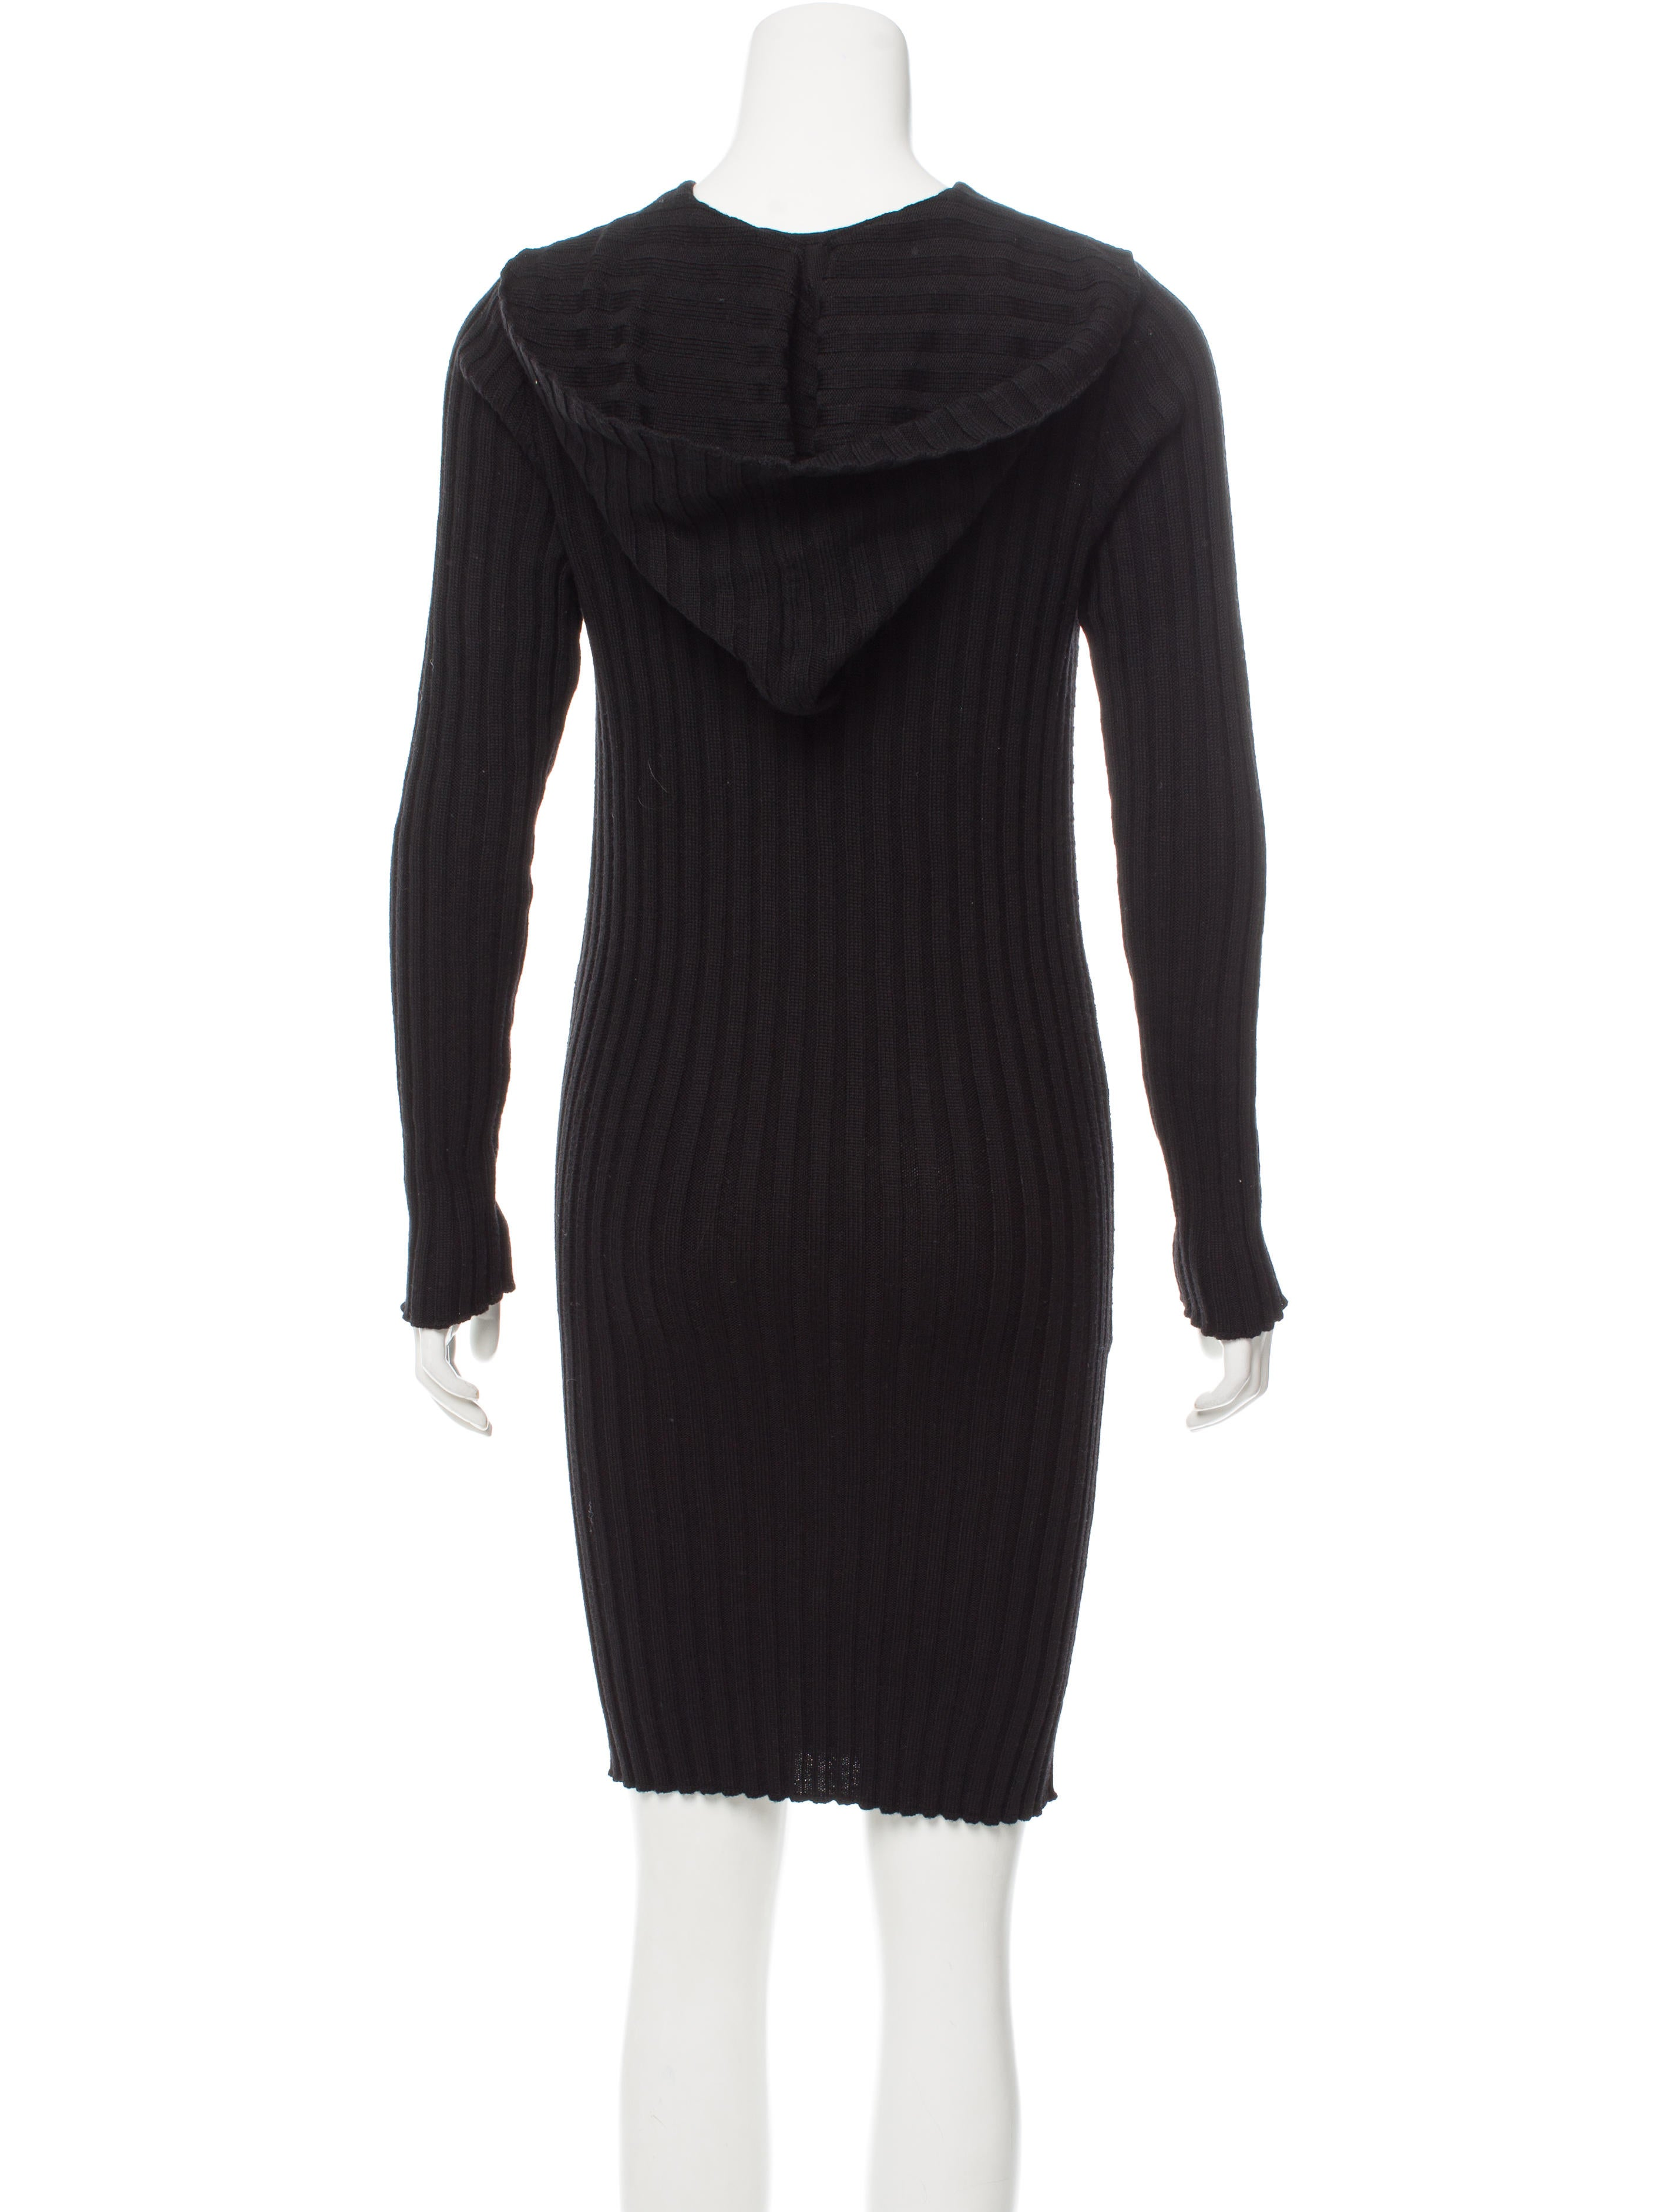 Alexander McQueen Wool Sweater Dress - Clothing - ALE39187 | The RealReal